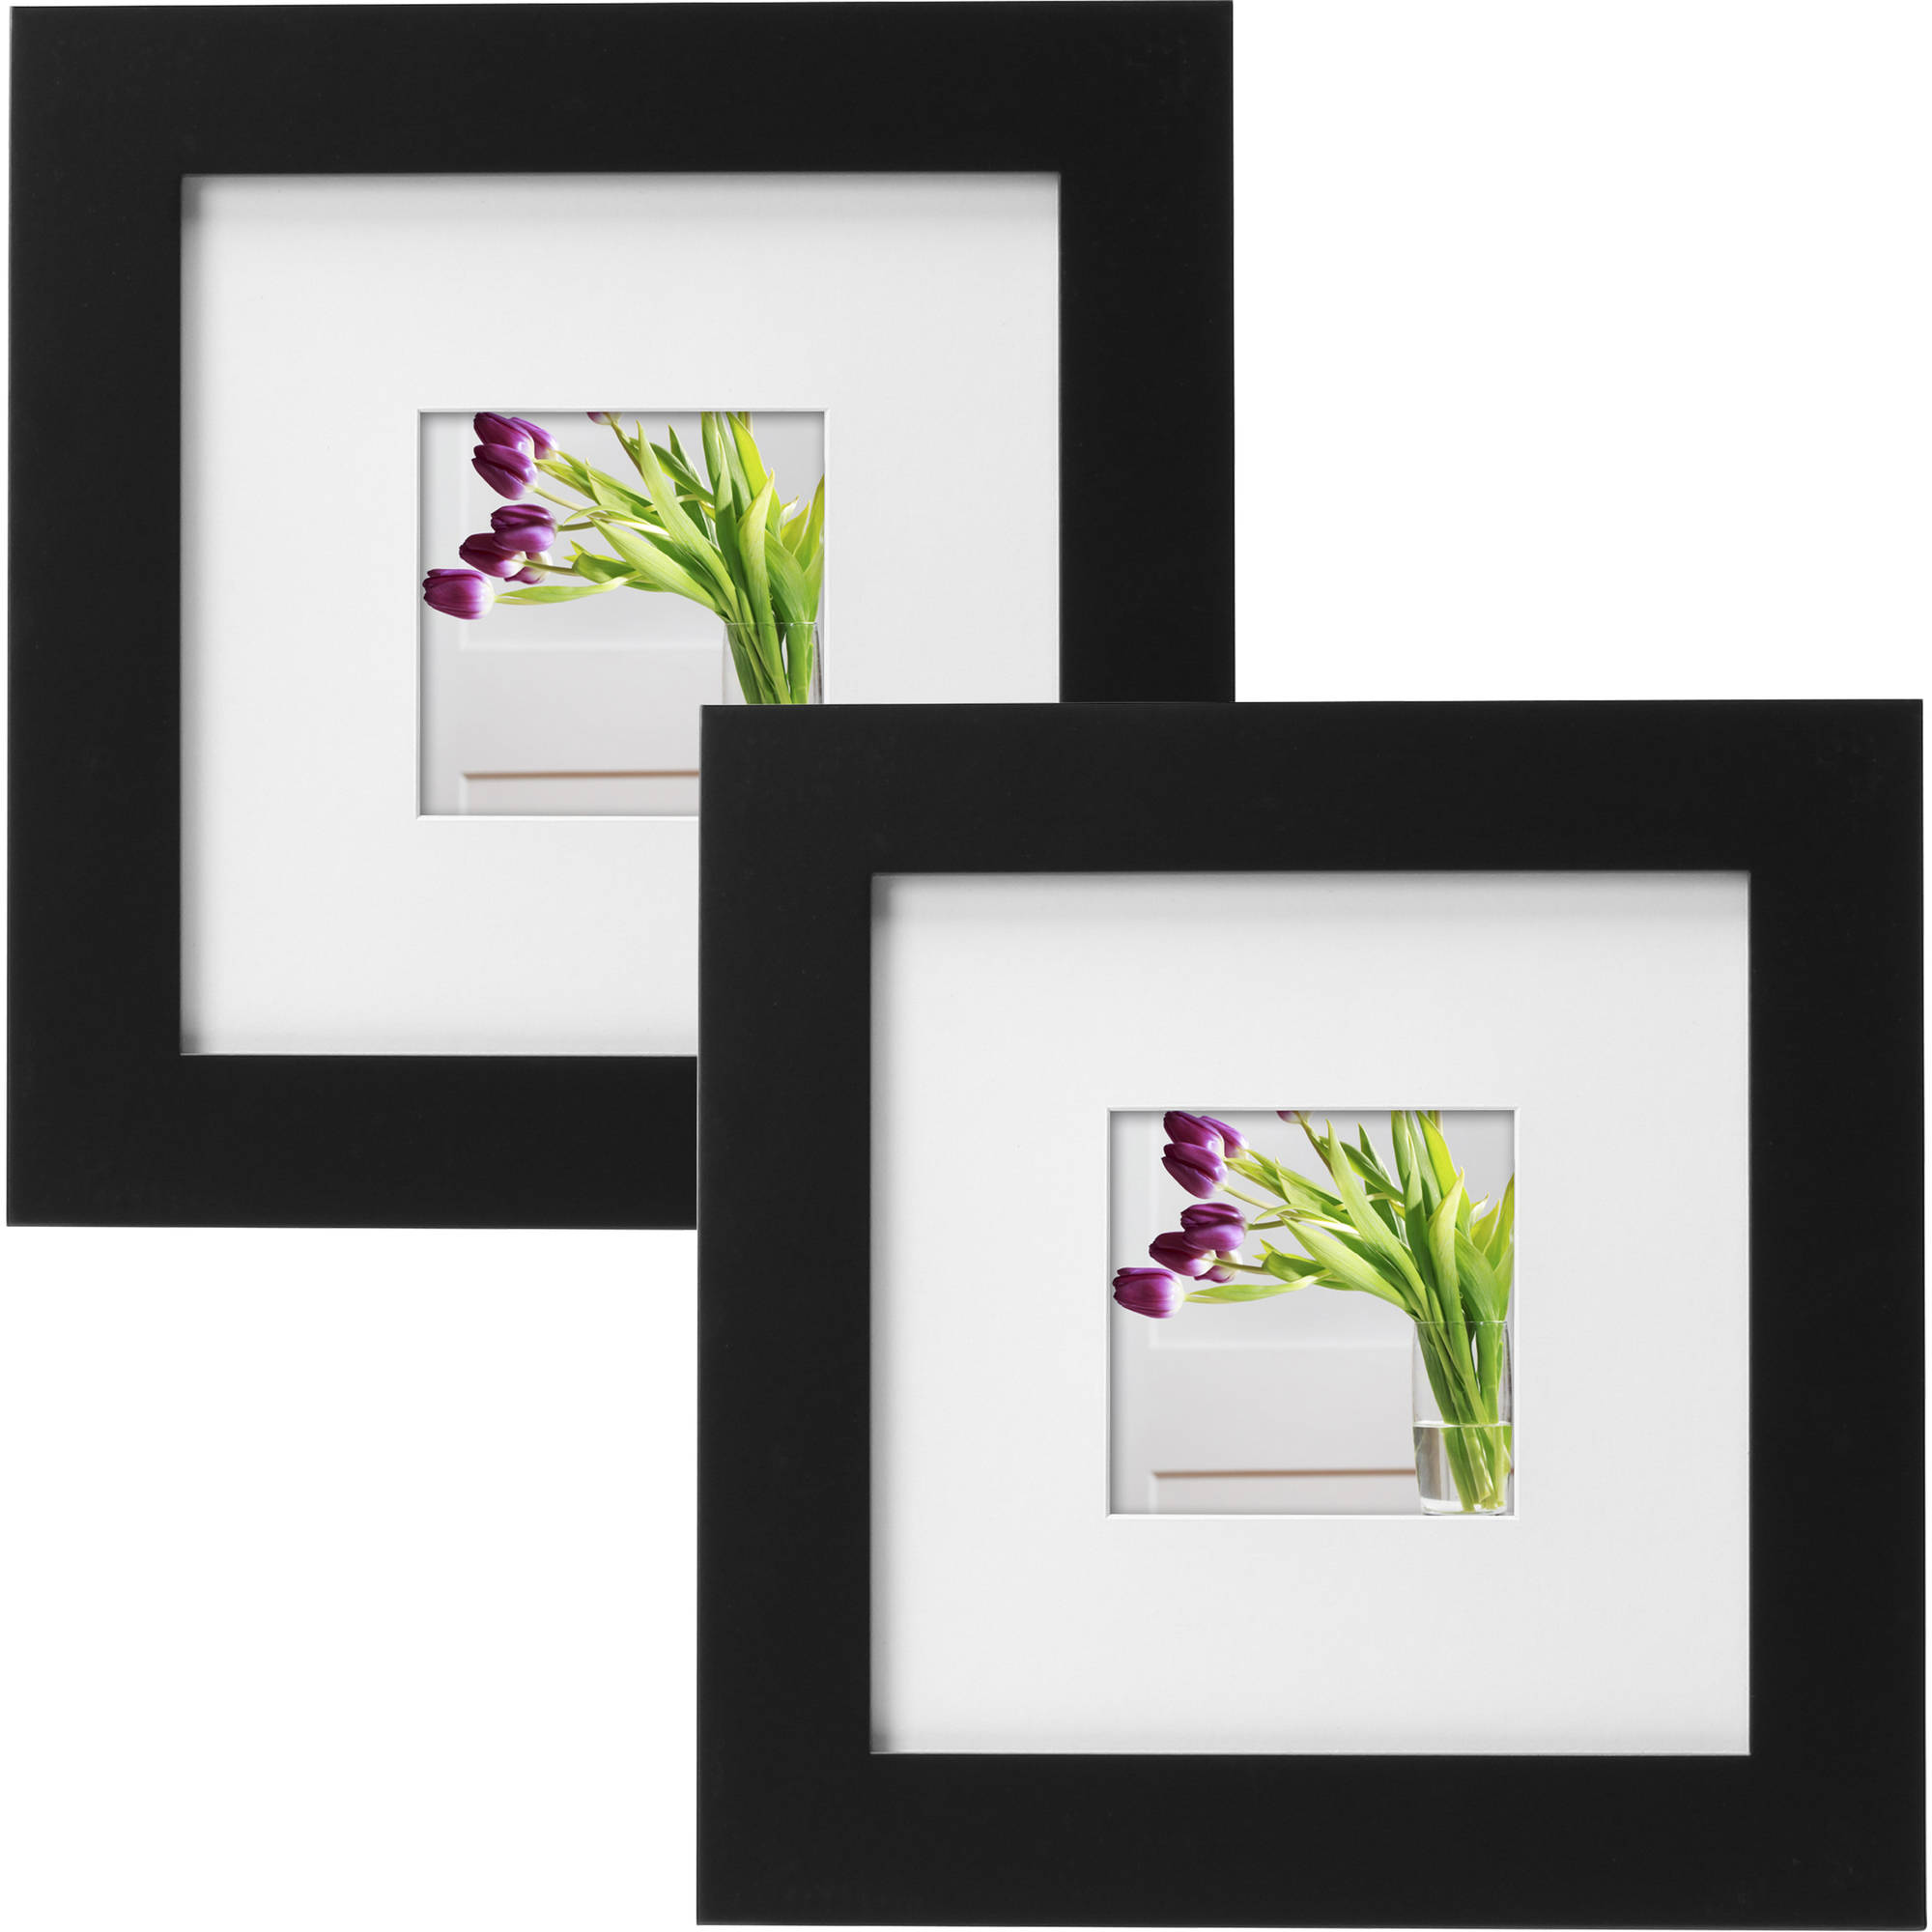 """Mainstays Museum 8"""" x 8"""" Matted to 4"""" x 4"""" Picture Frame, Black, Set of 2"""